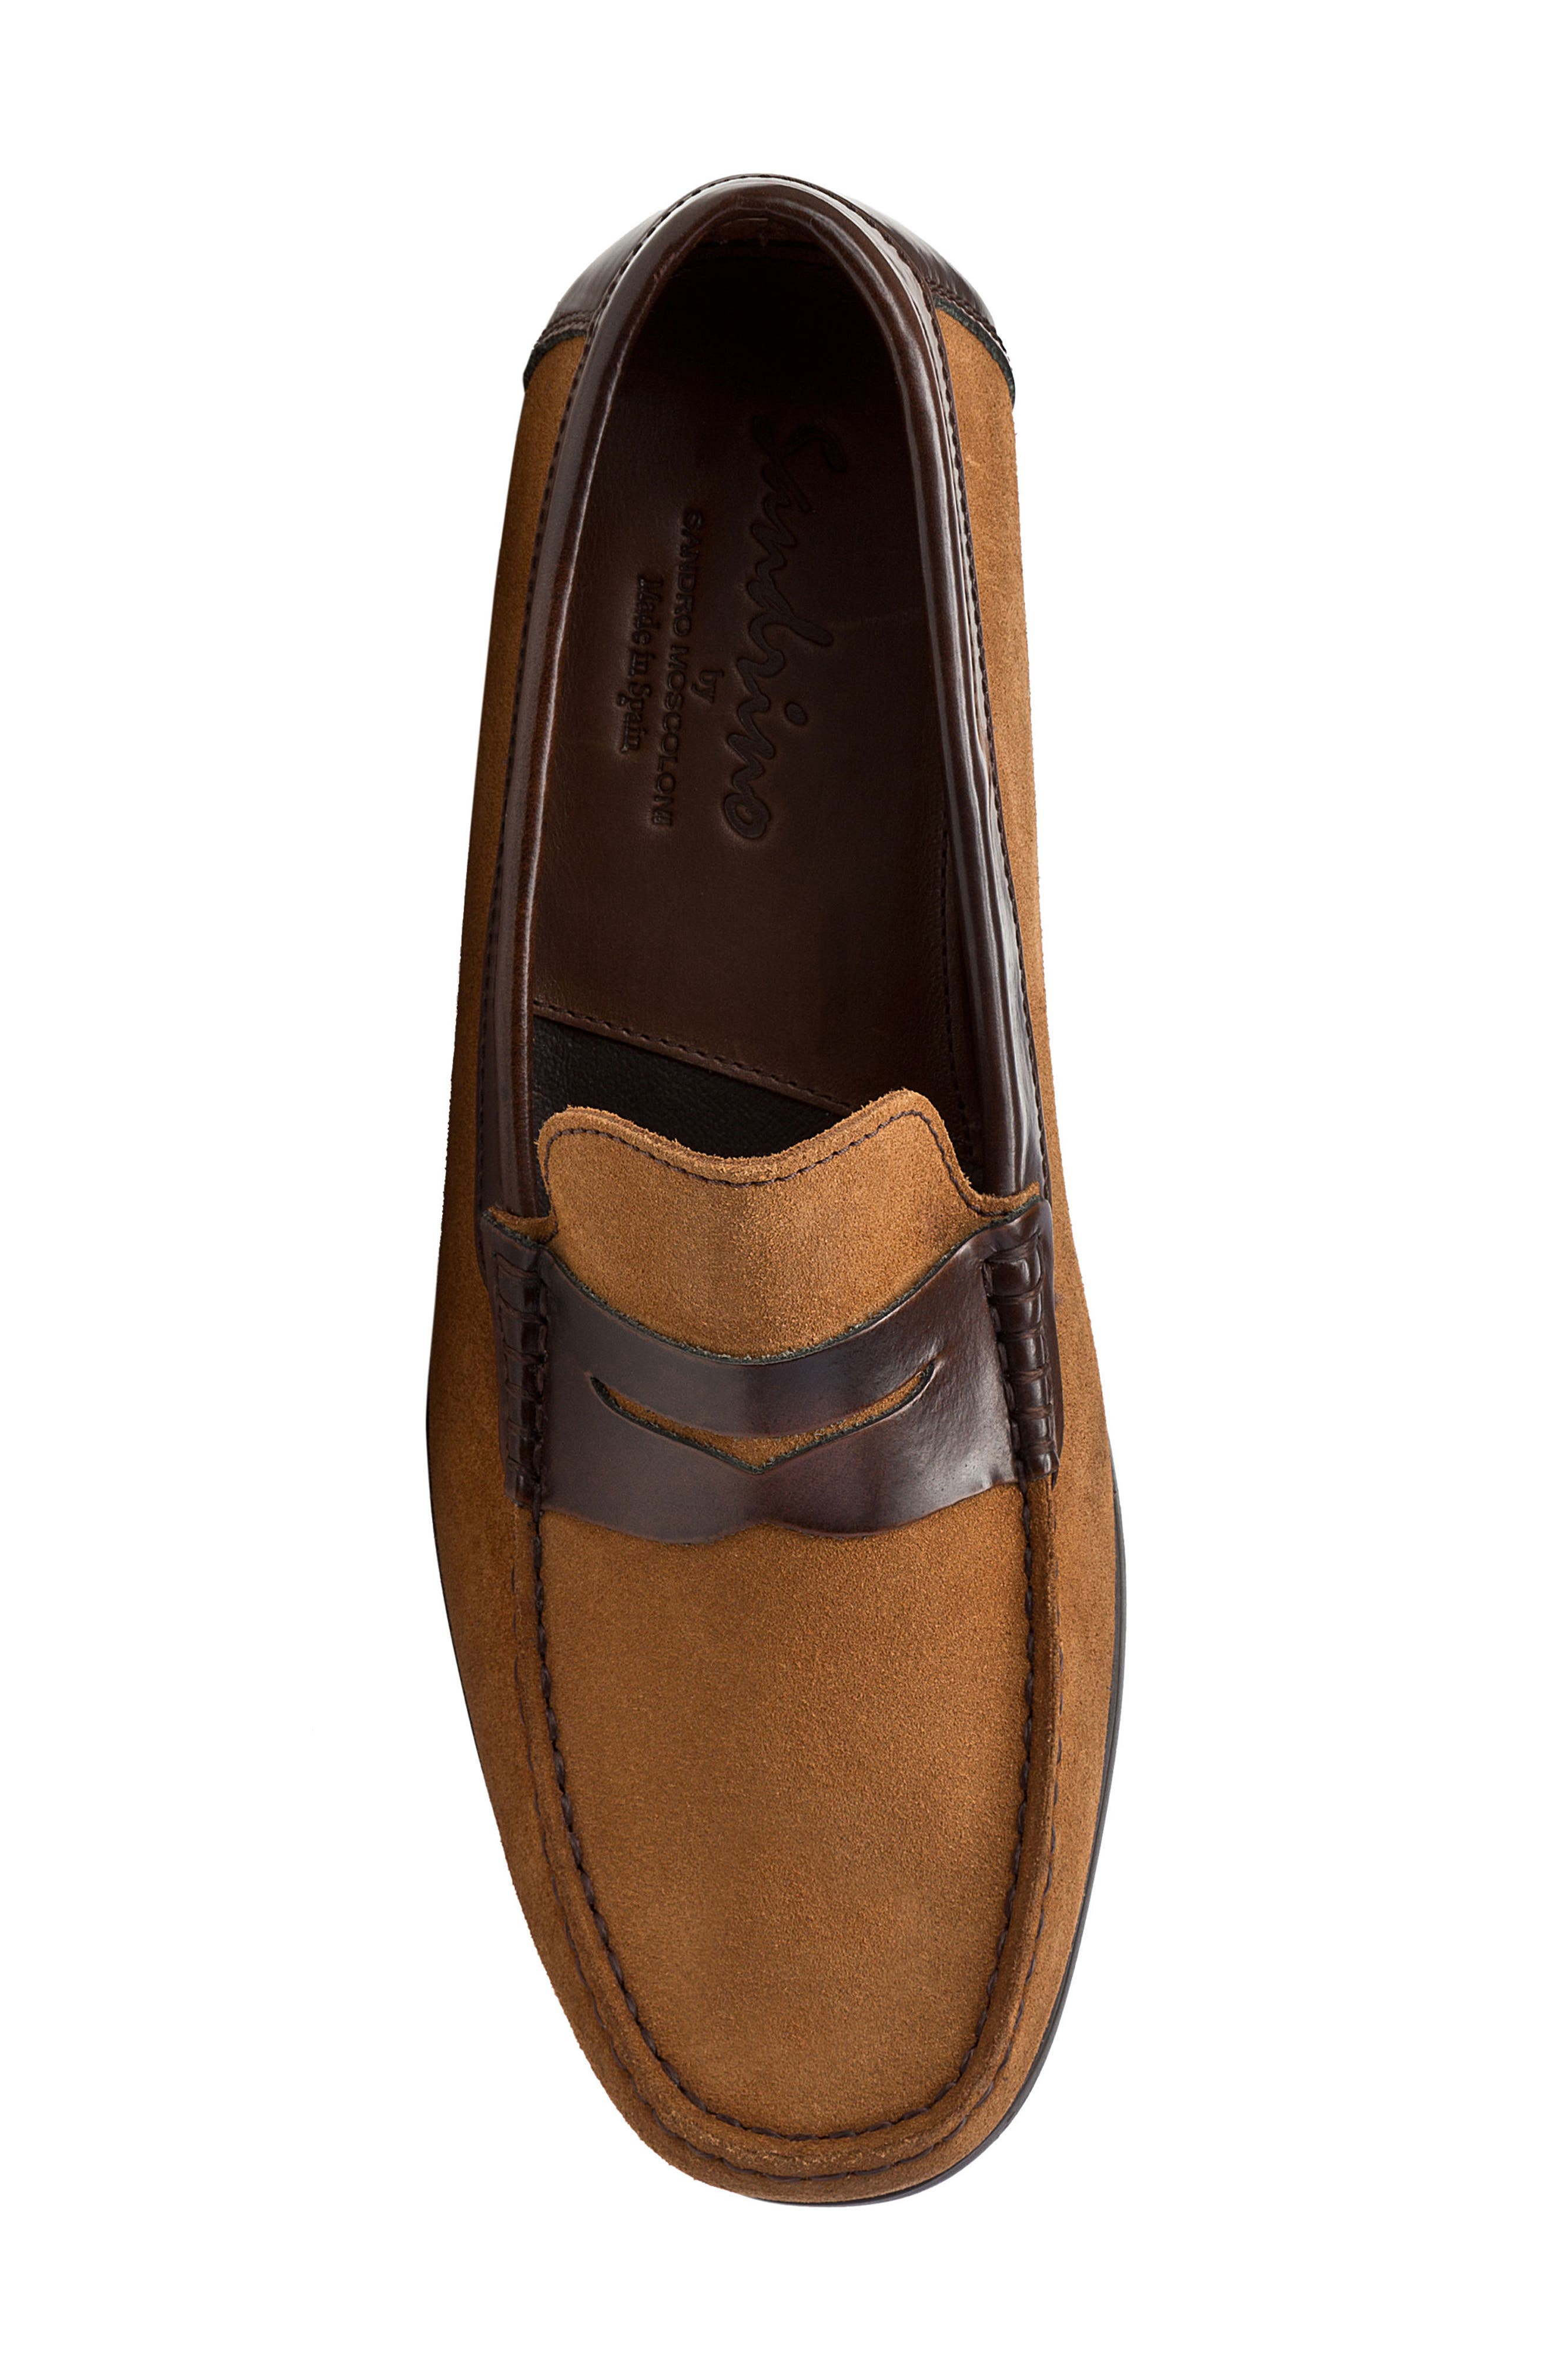 Lucho Penny Loafer,                             Alternate thumbnail 5, color,                             230